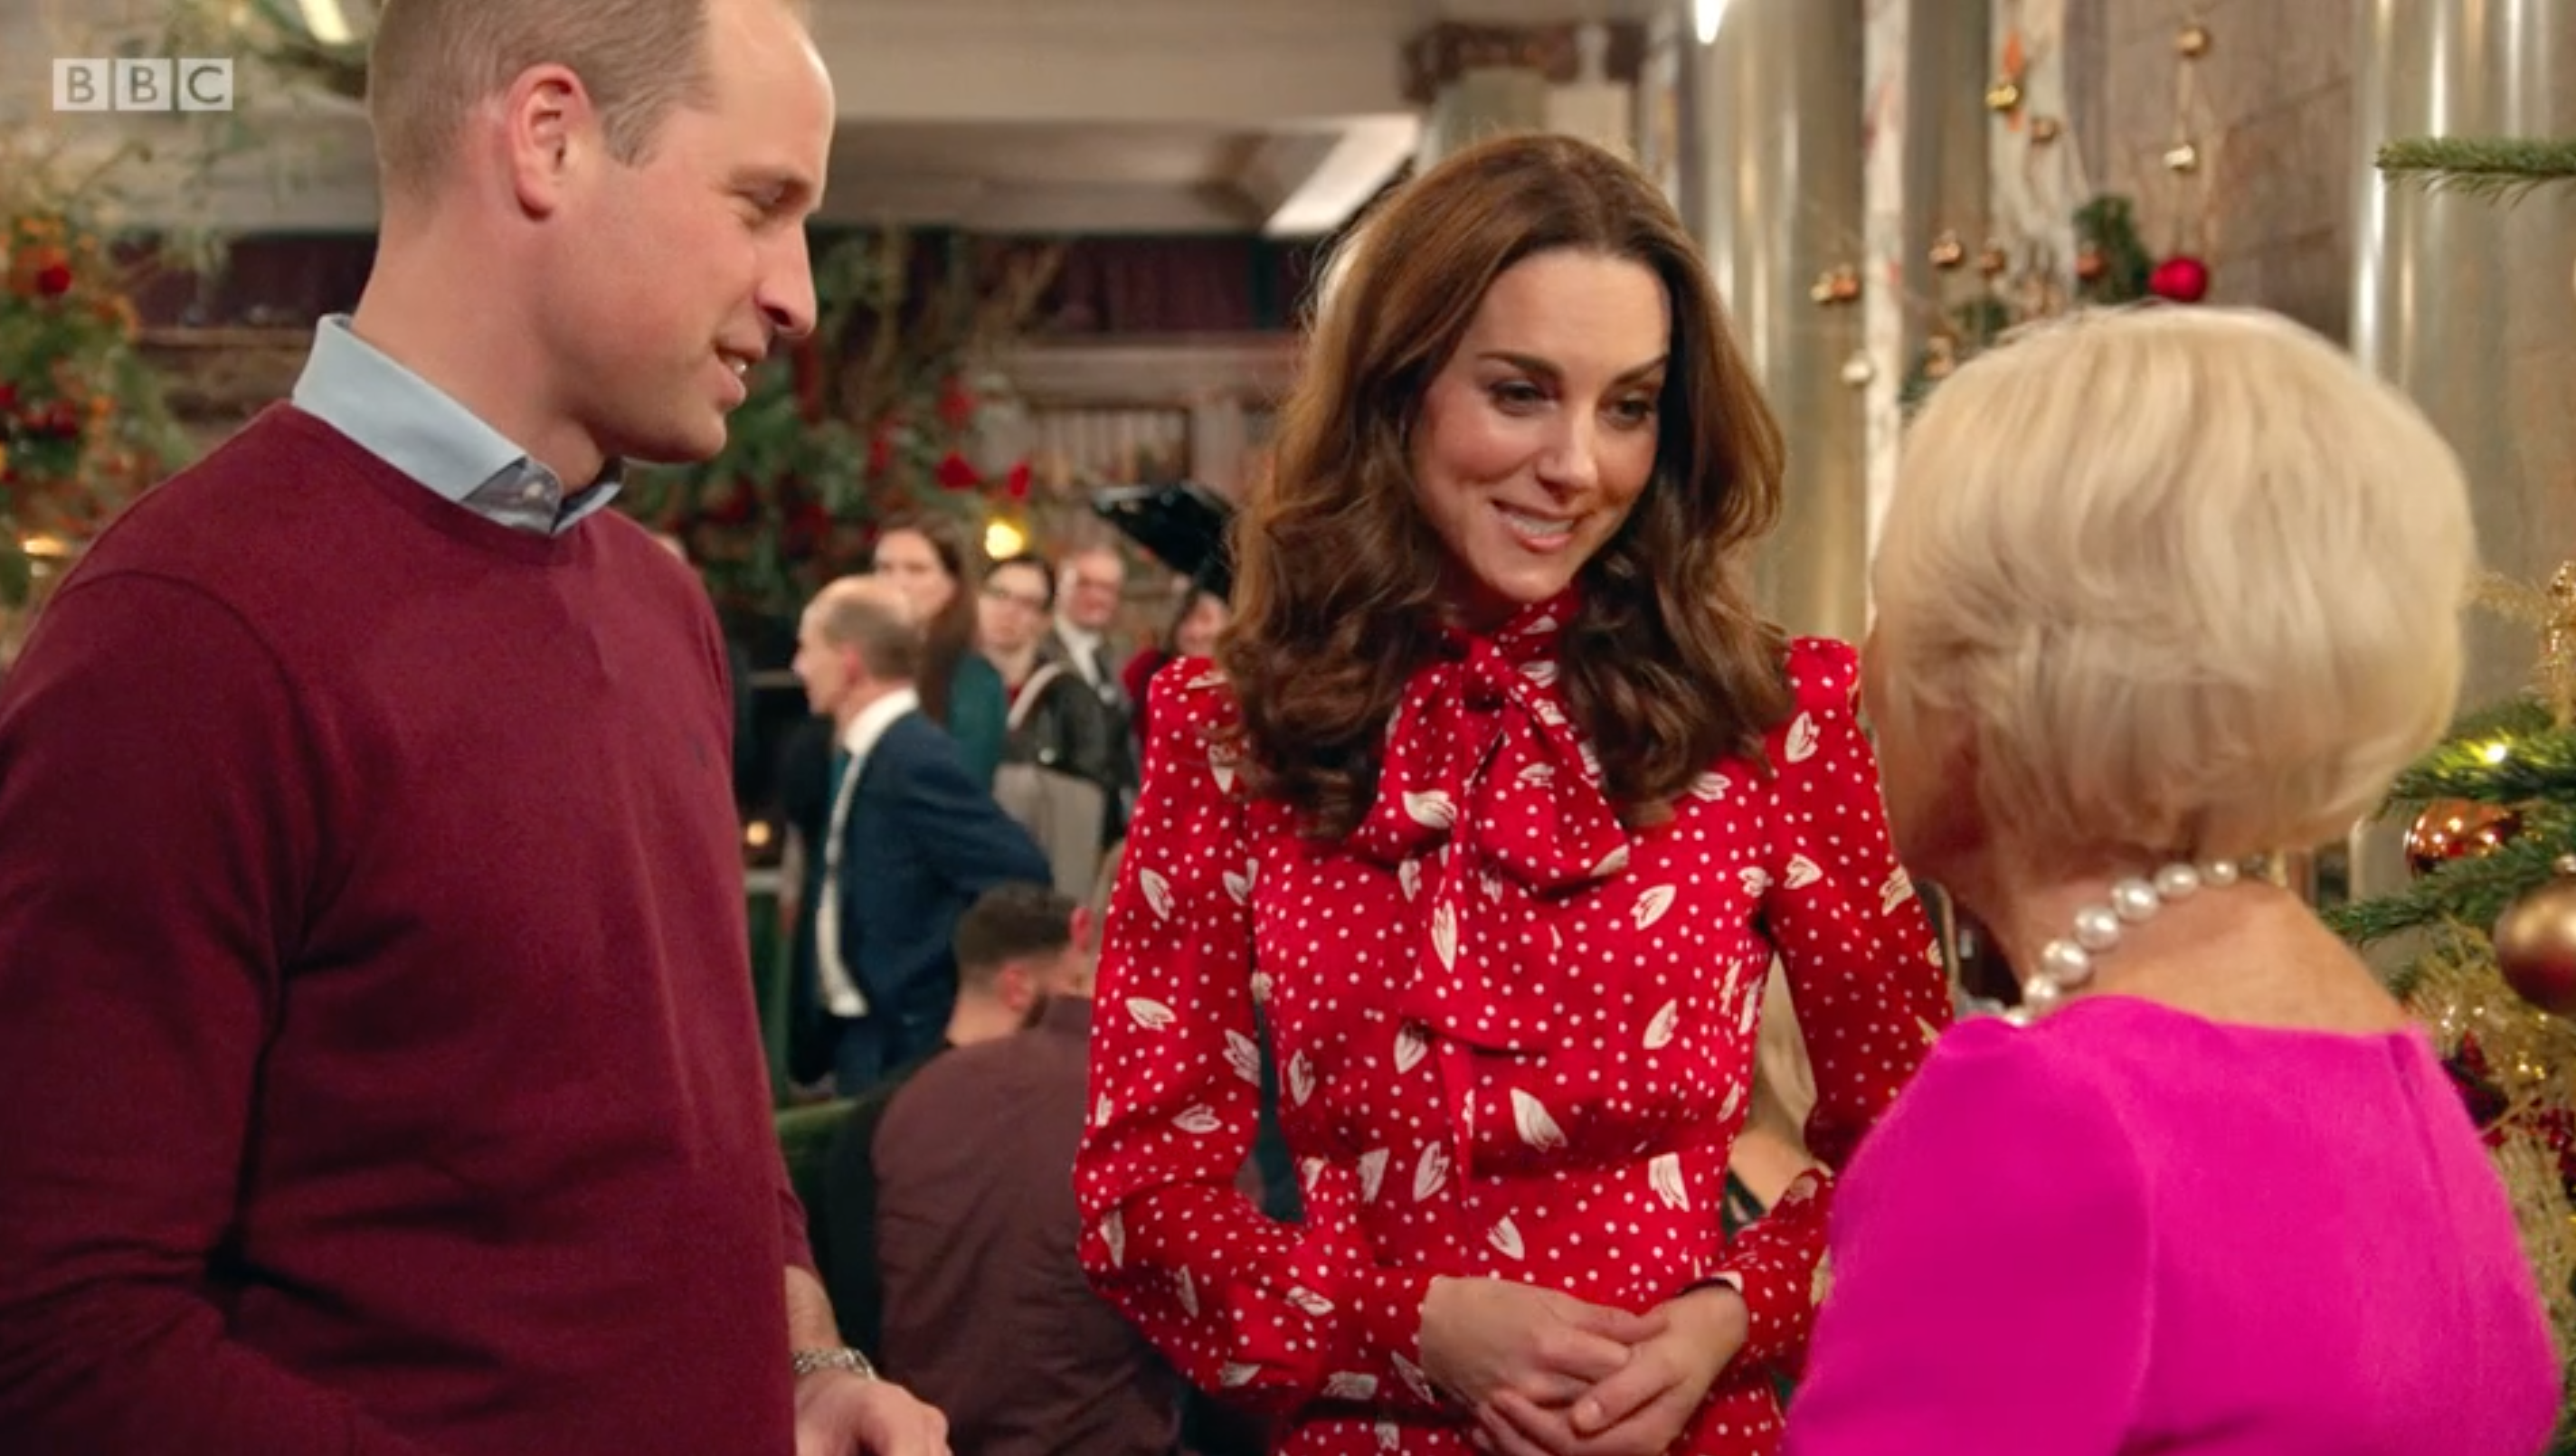 BBC viewers convinced Kate 'shrugged off' Prince William's hand on her shoulder